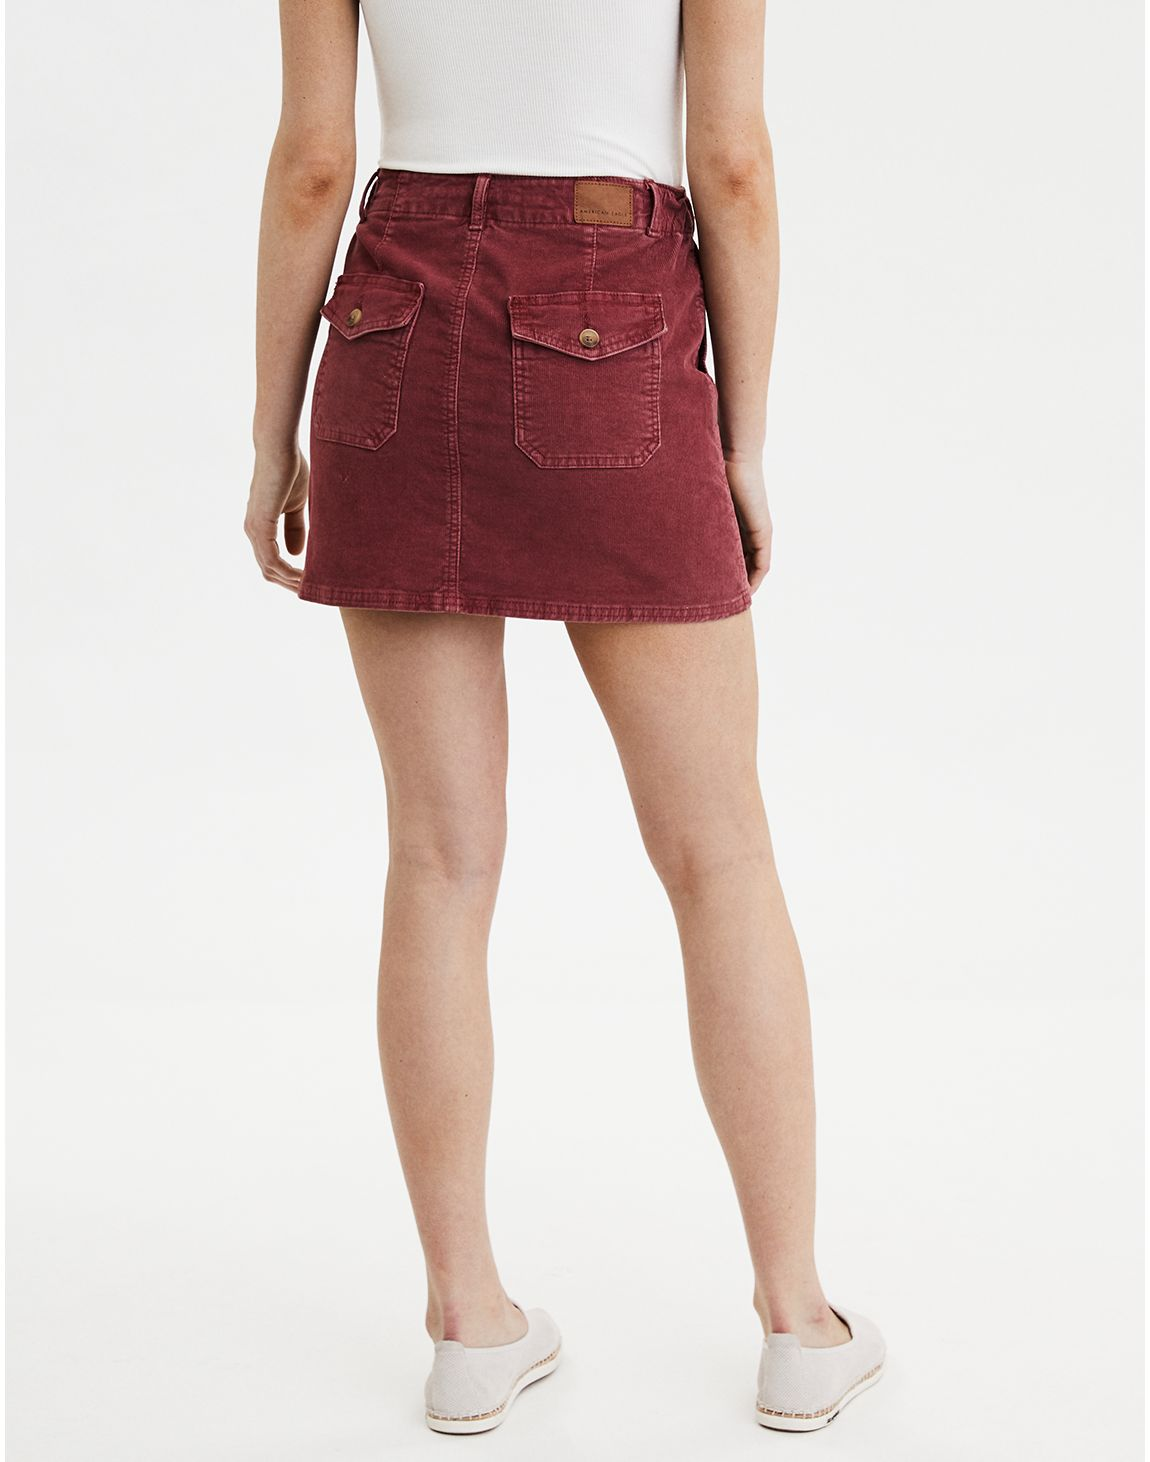 1fbebd2ab American Eagle   AE High-Waisted Corduroy A-Line Skirt in Berry ...